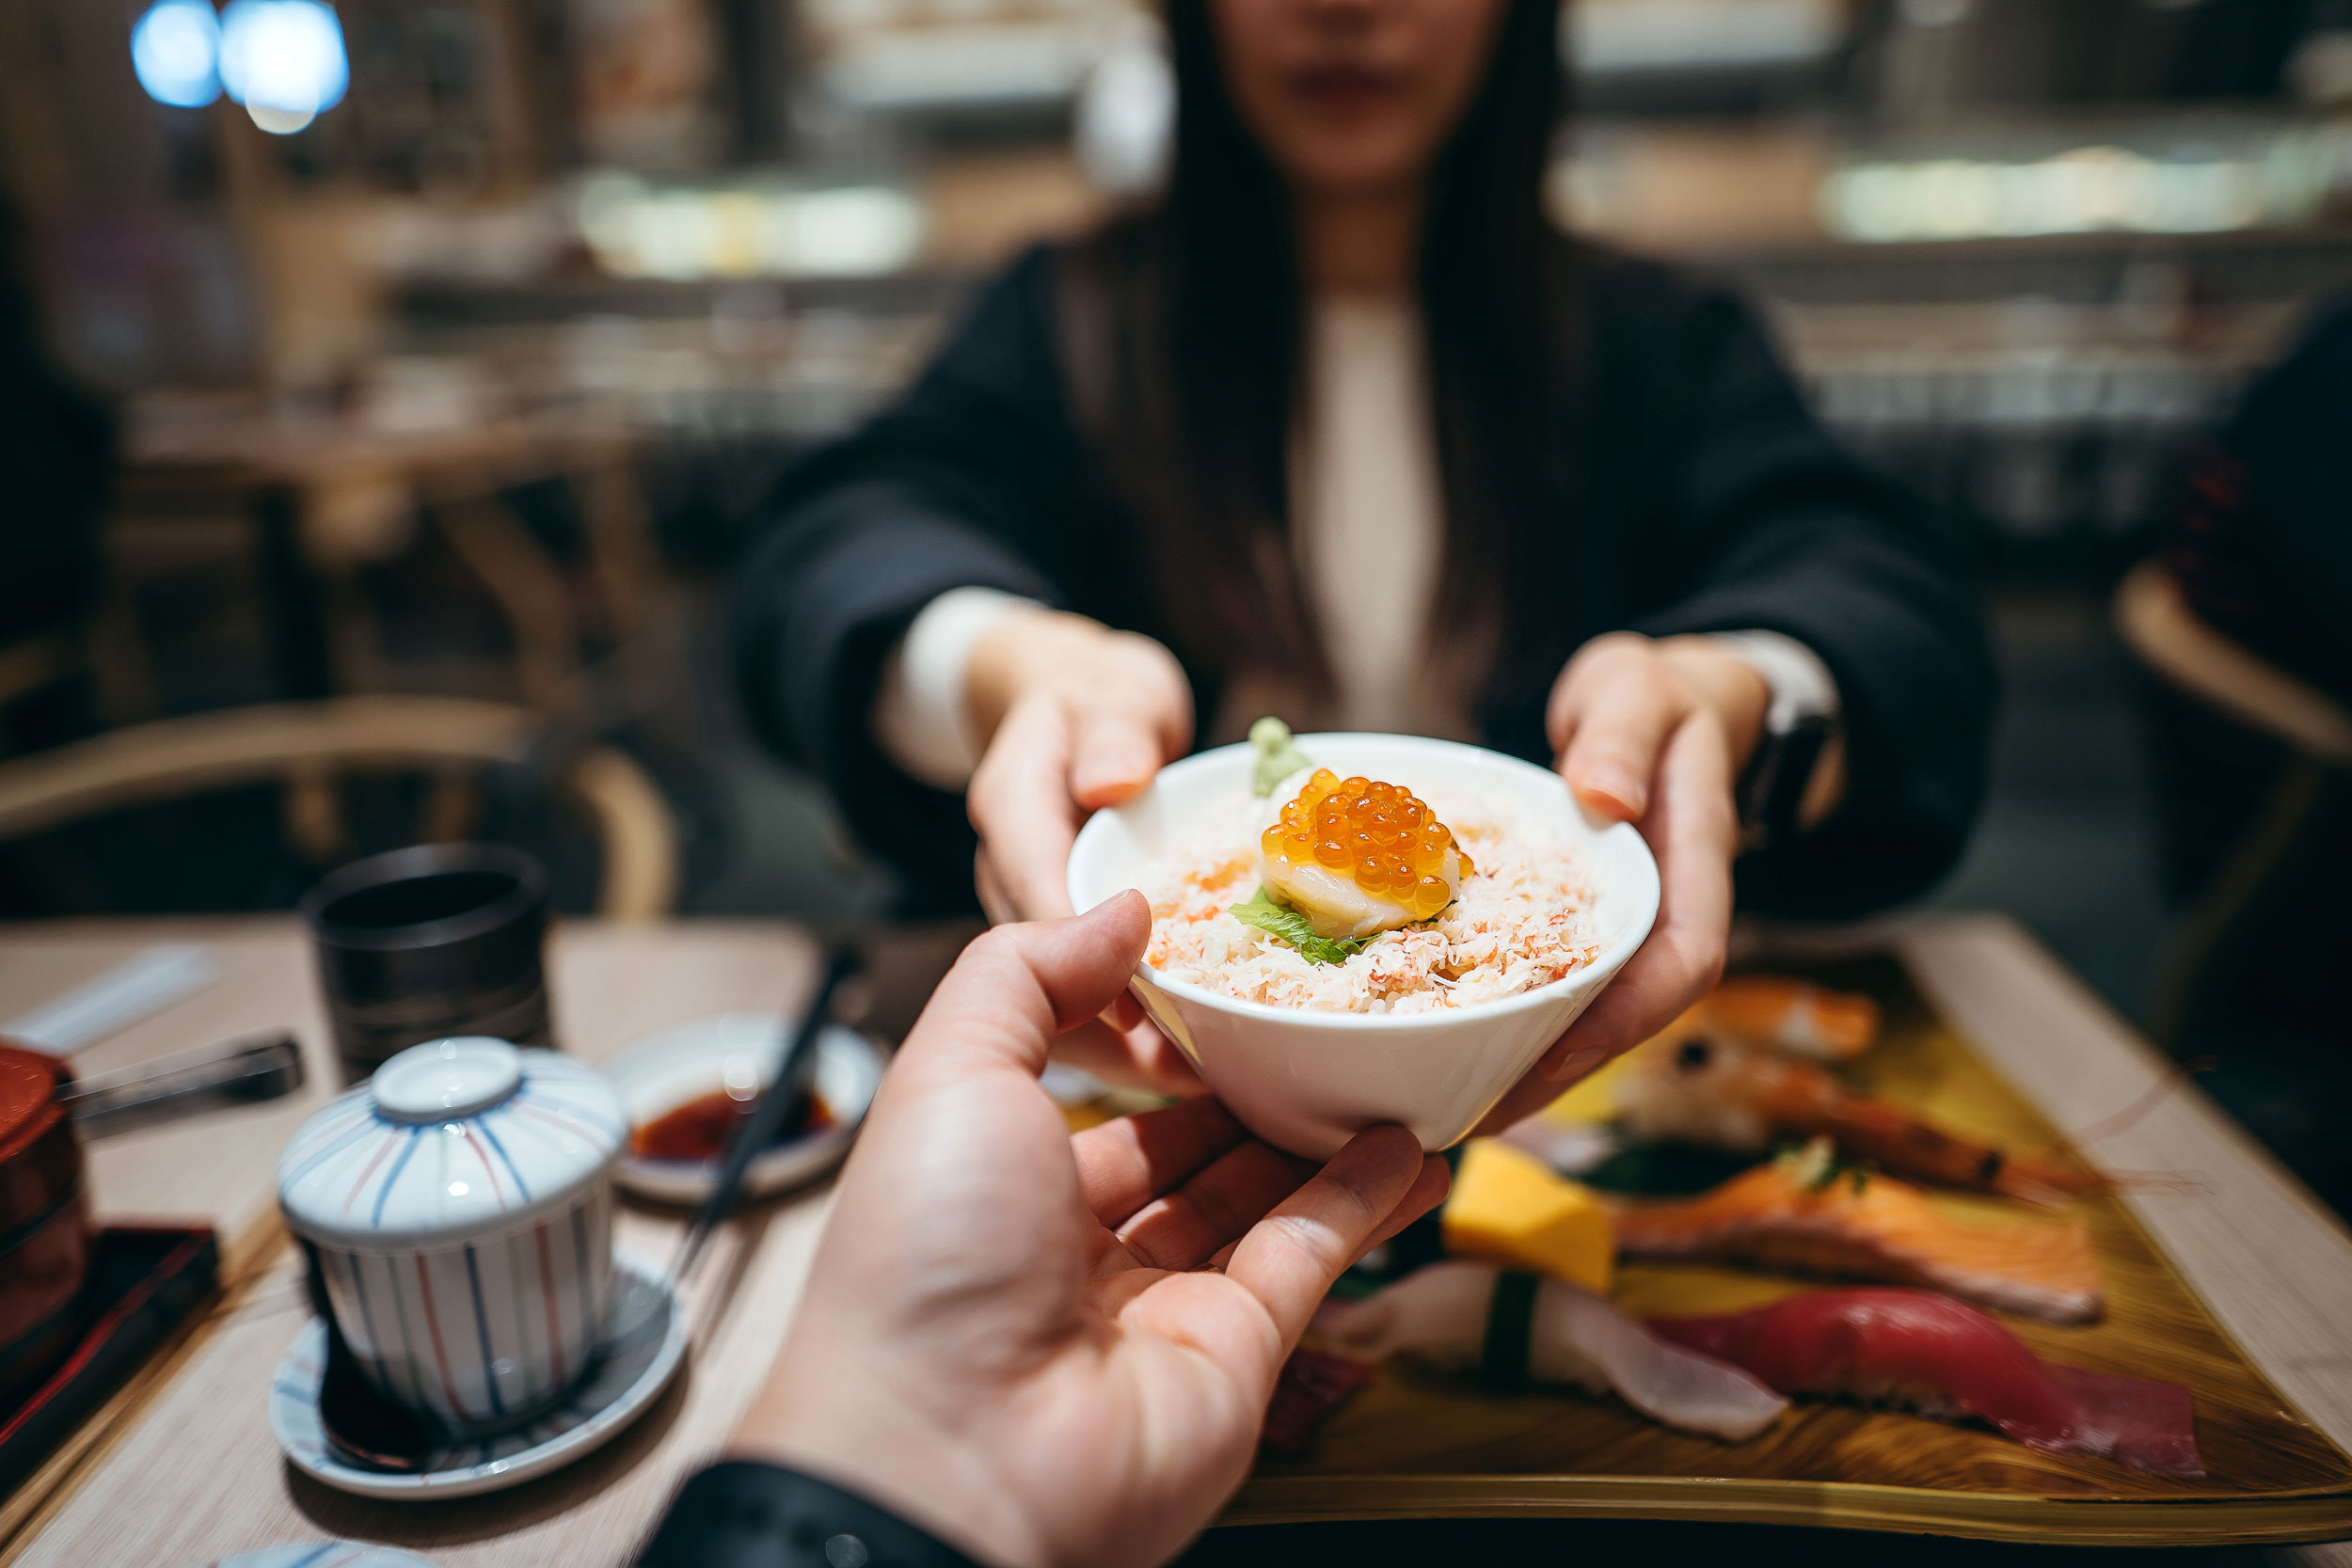 A person handing a small bowl filled with seafood donburi to a young woman.